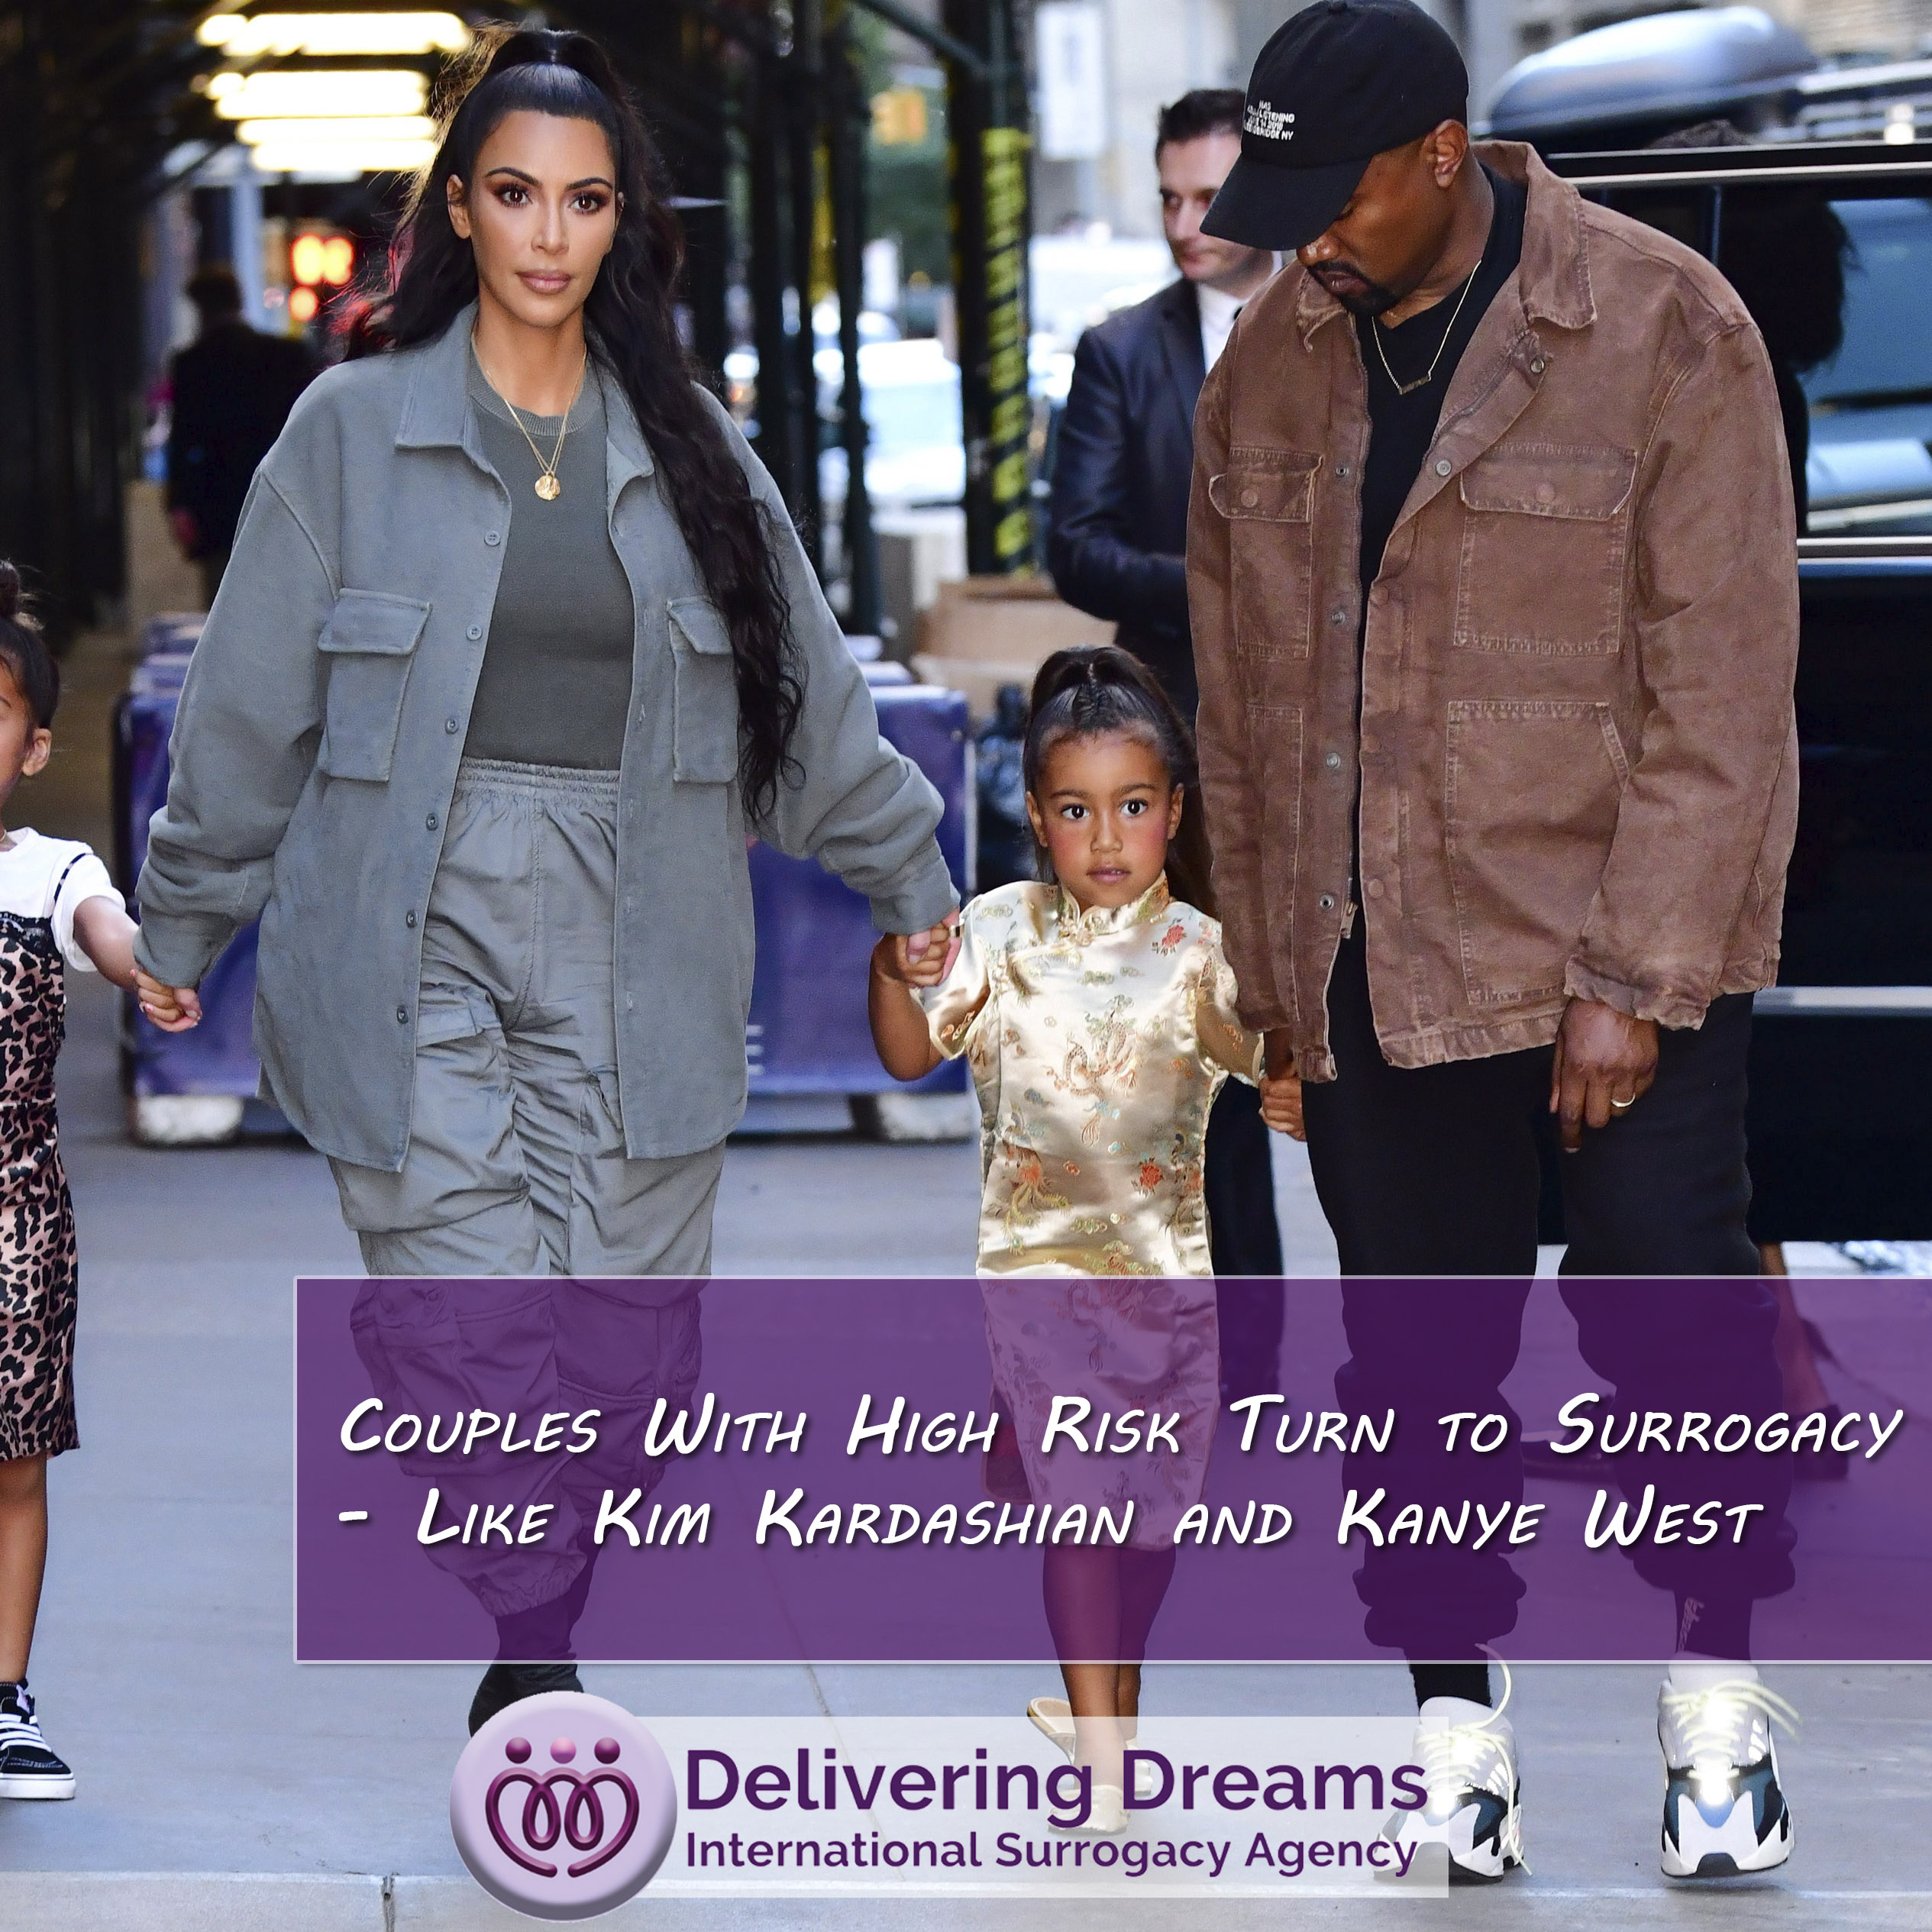 Couples With High Risk Turn to Surrogacy – Like Kim Kardashian and Kanye West